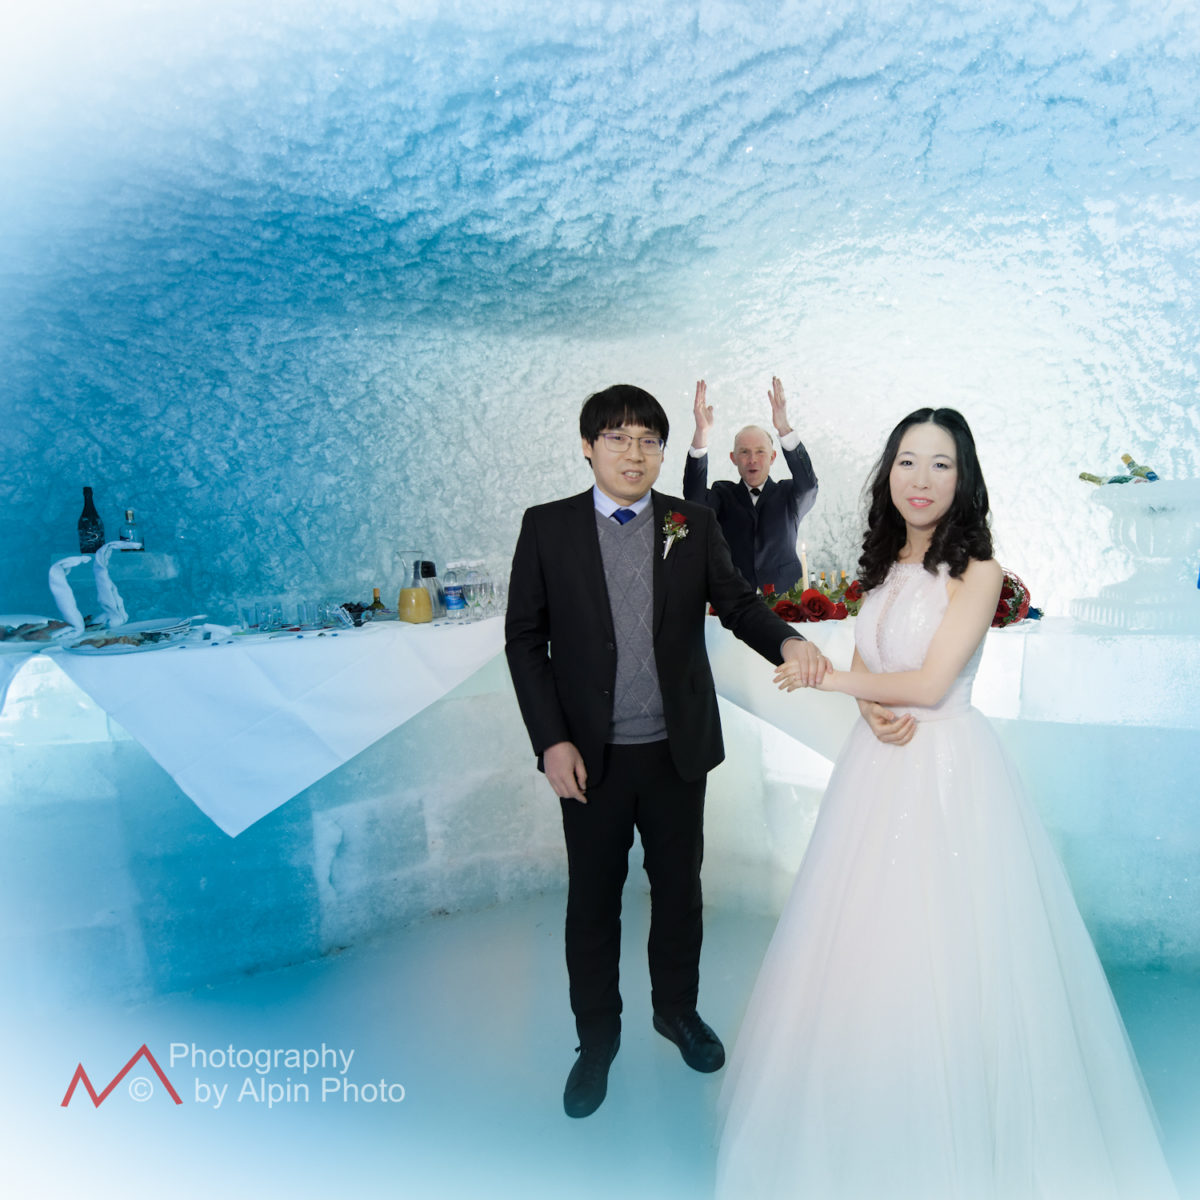 wedding at the Jungfraujoch